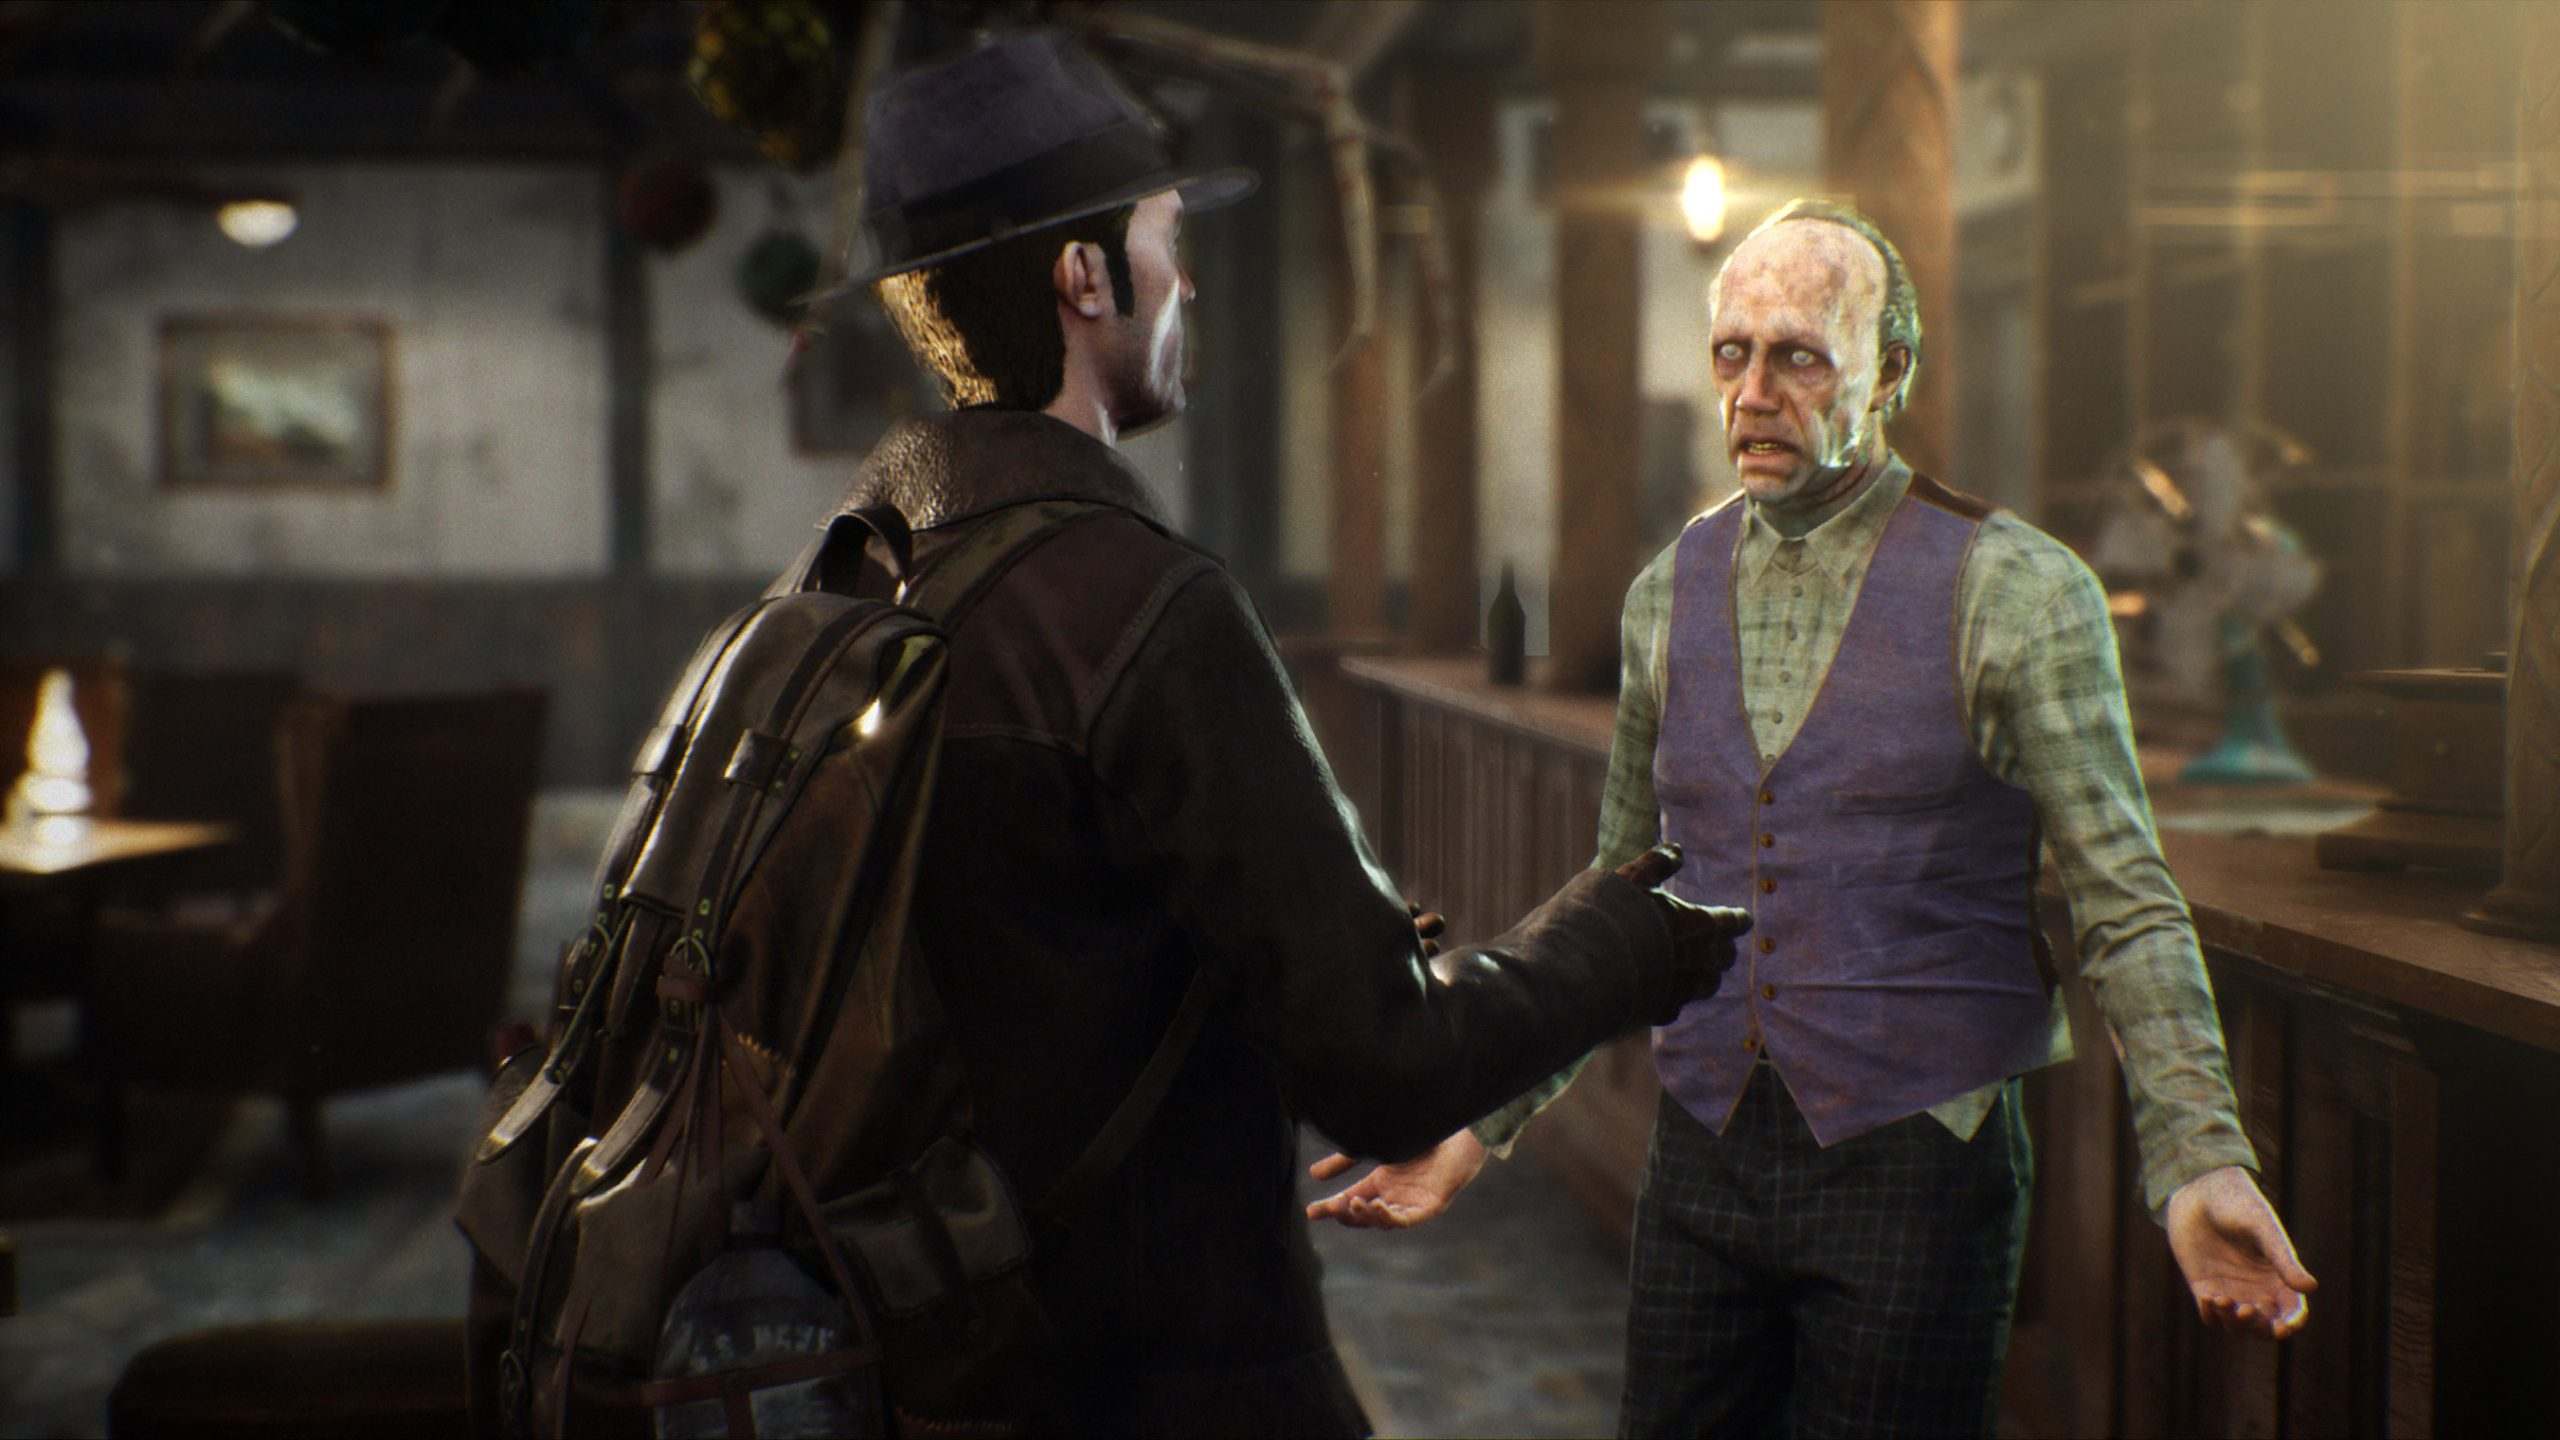 'The Sinking City' Developer Would now not Need You to Dangle Their Game on Steam